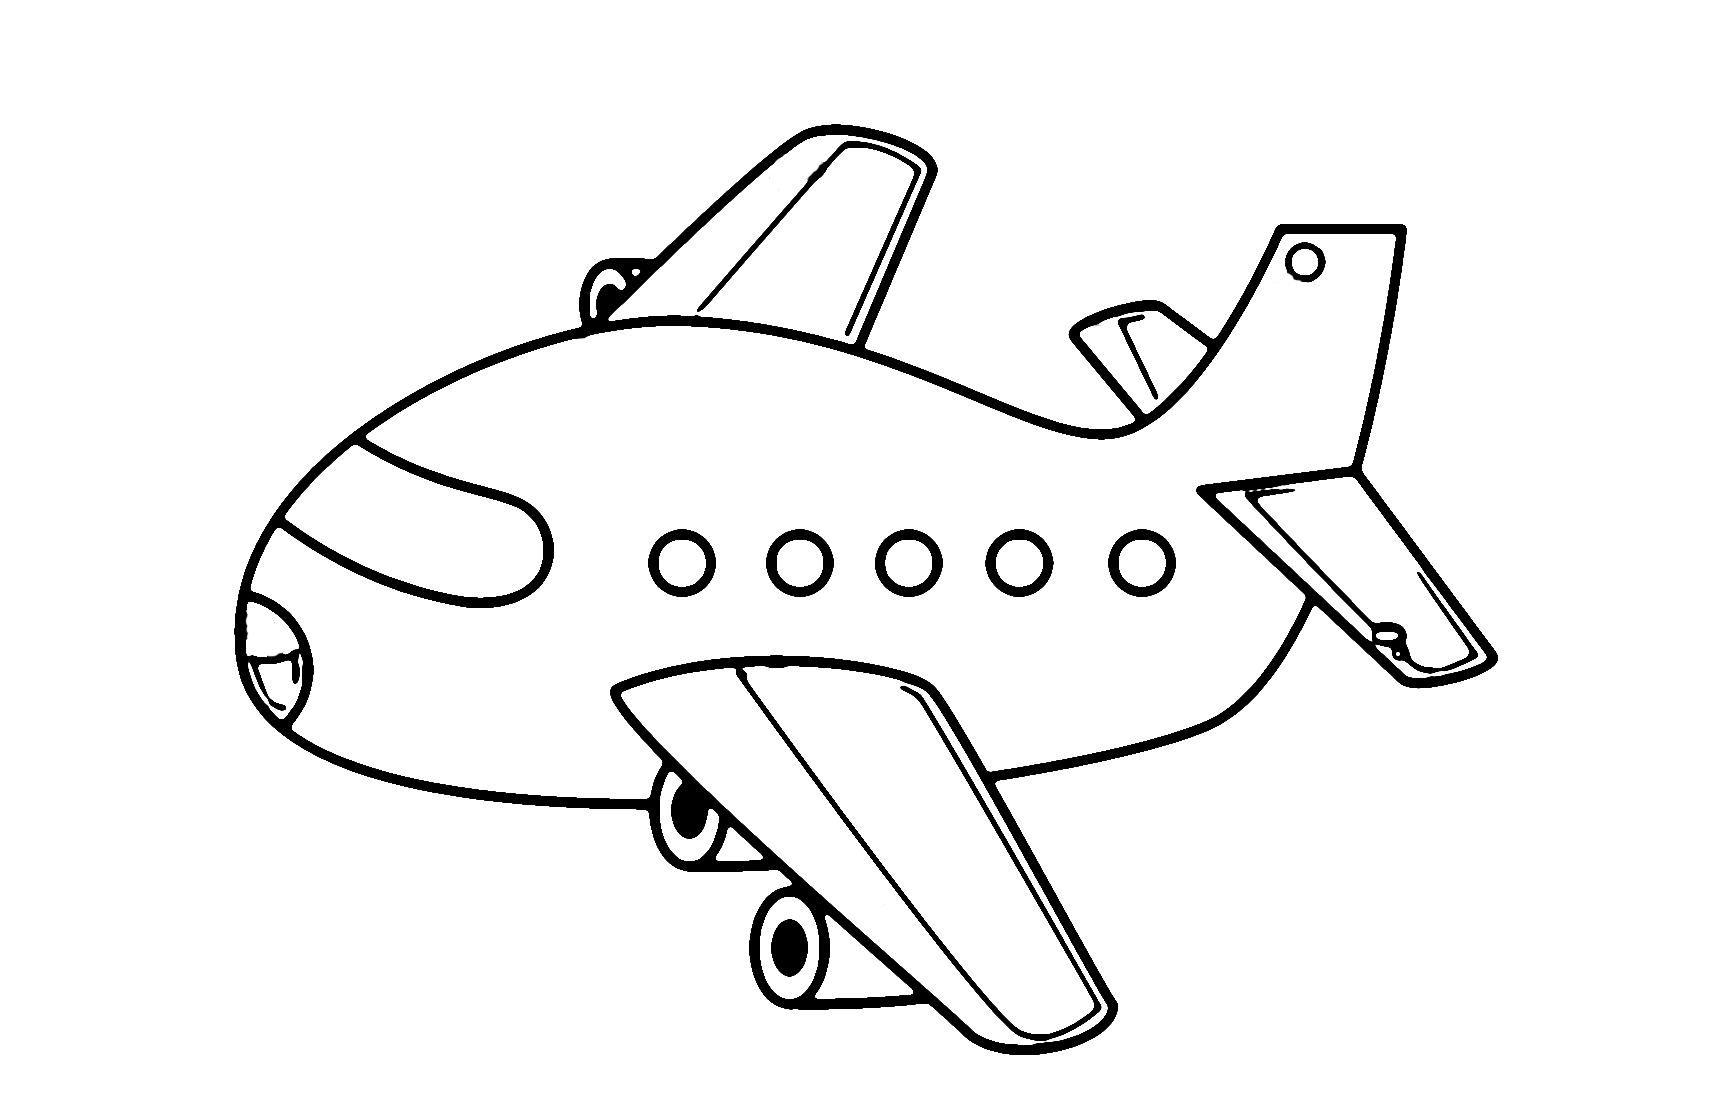 jet colouring pages free printable airplane coloring pages for kids cool2bkids jet pages colouring